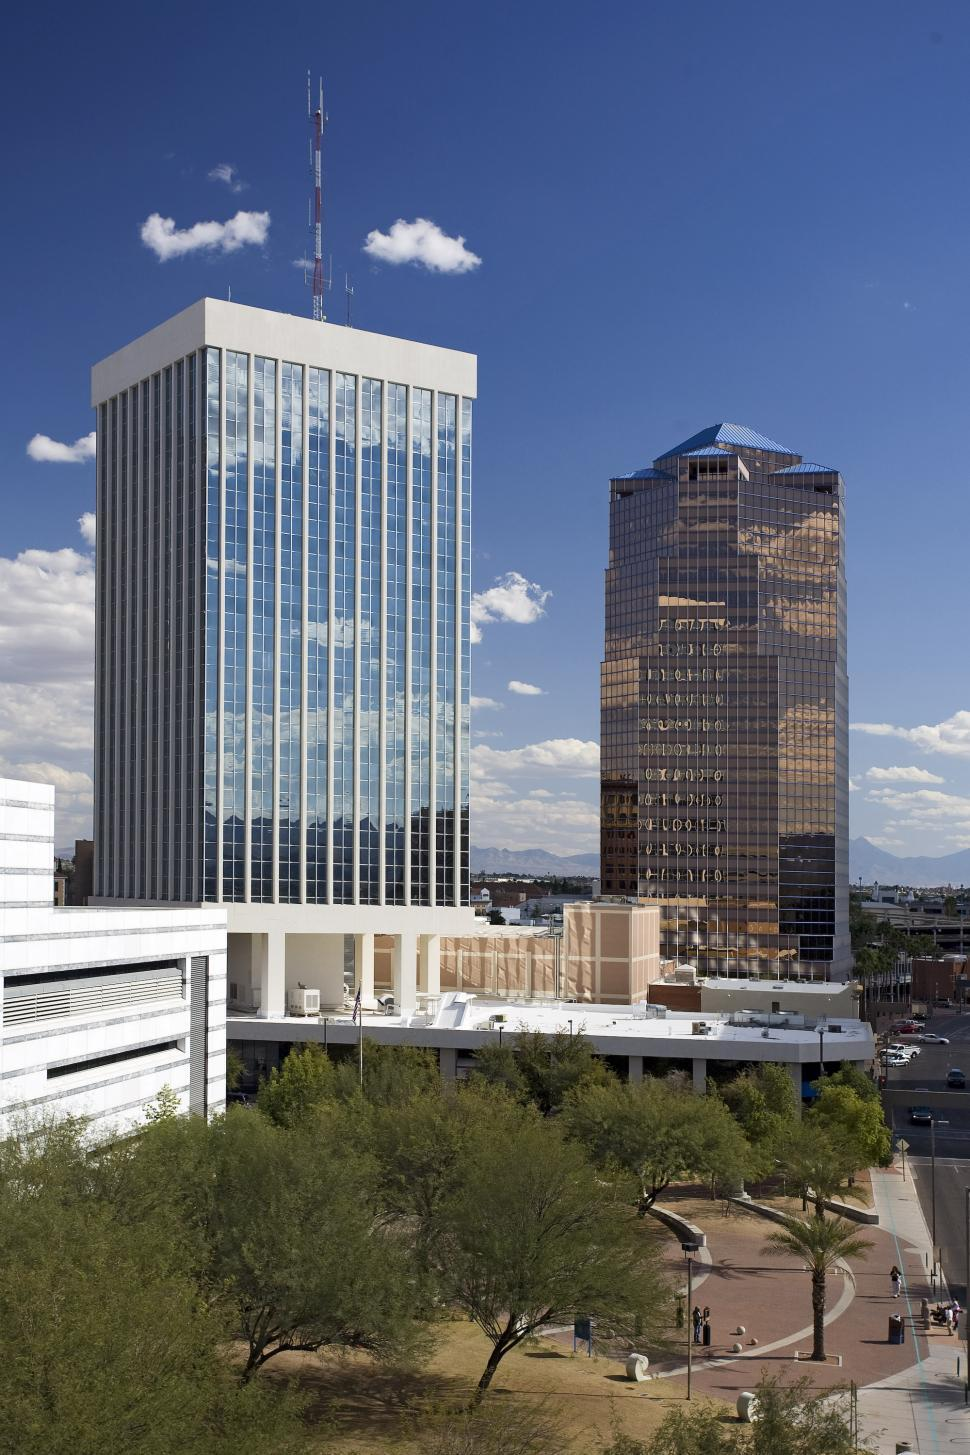 Download Free Stock Photo of Downtown Tucson